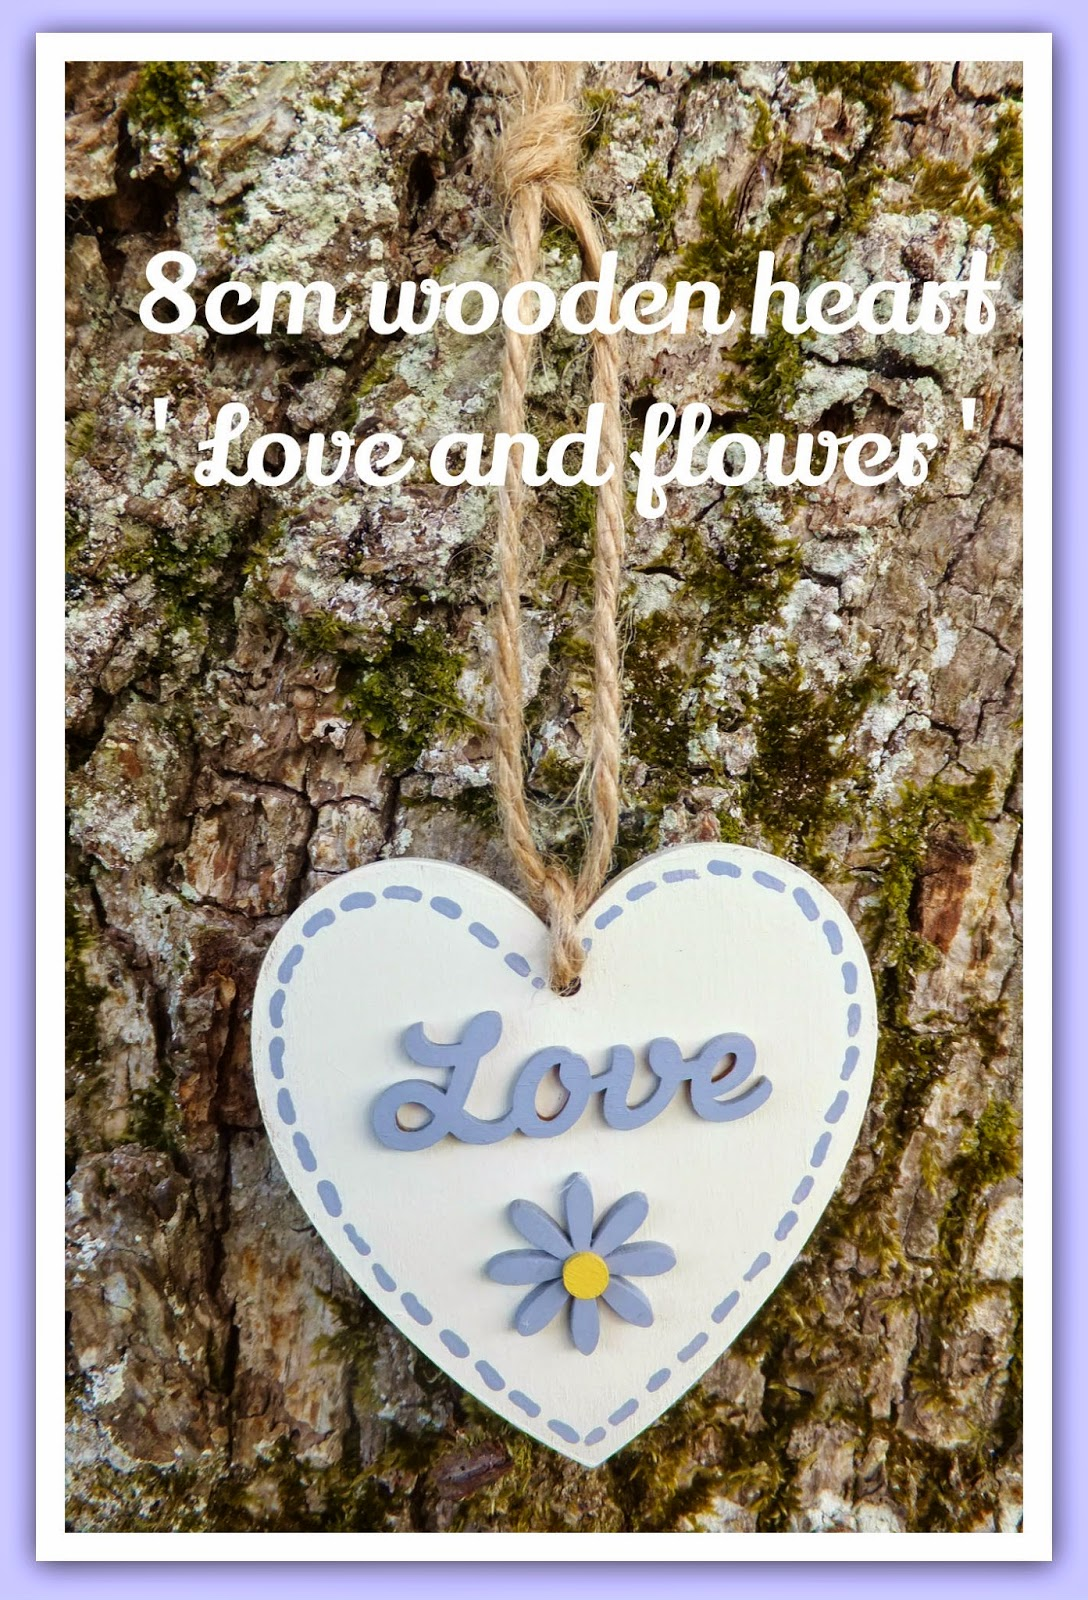 painted wooden heart decoration hanging on tree